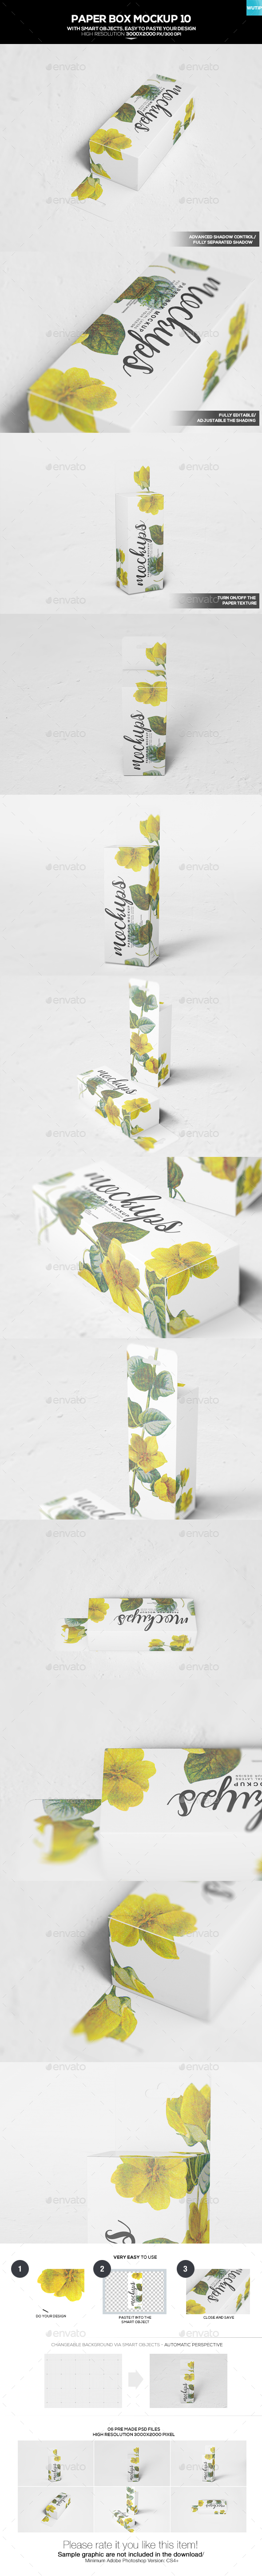 Paper Box Mockup 10 - Miscellaneous Packaging